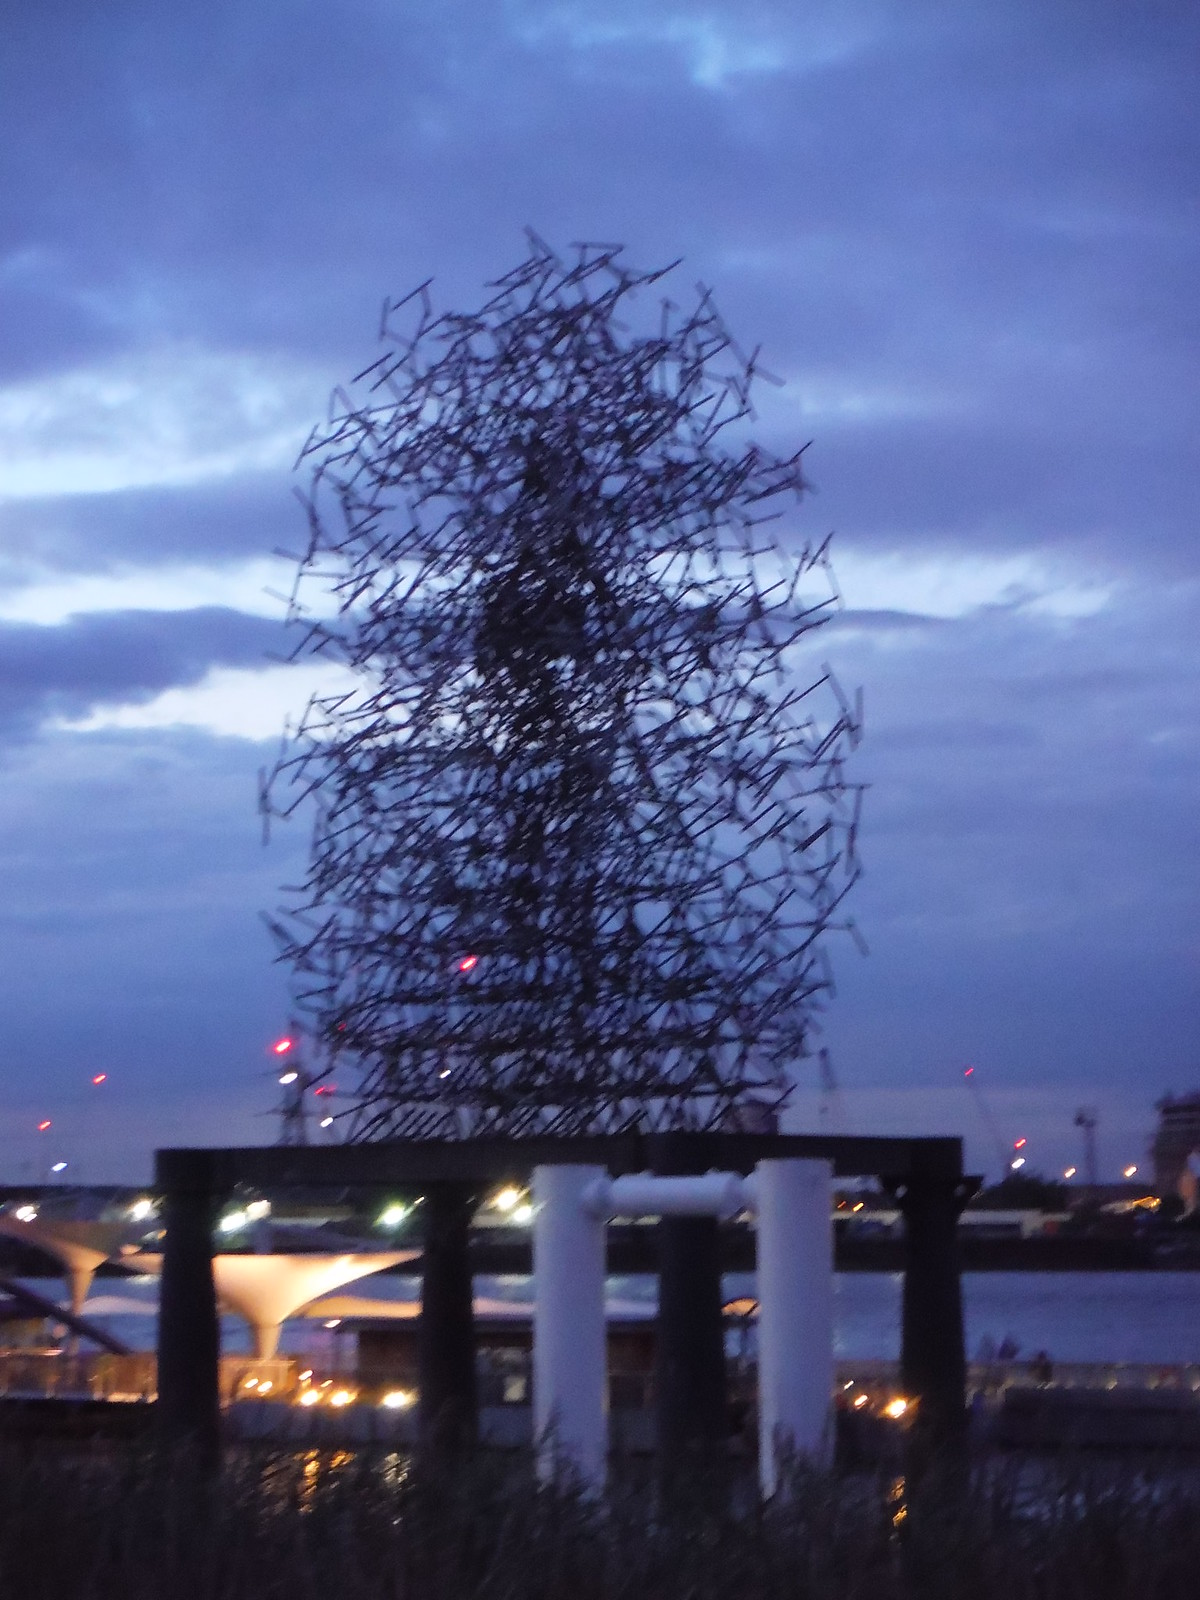 Antony Gormley - Quantum Cloud (at dusk) SWC Short Walk 21 - The Line Modern Art Walk (Stratford to North Greenwich)